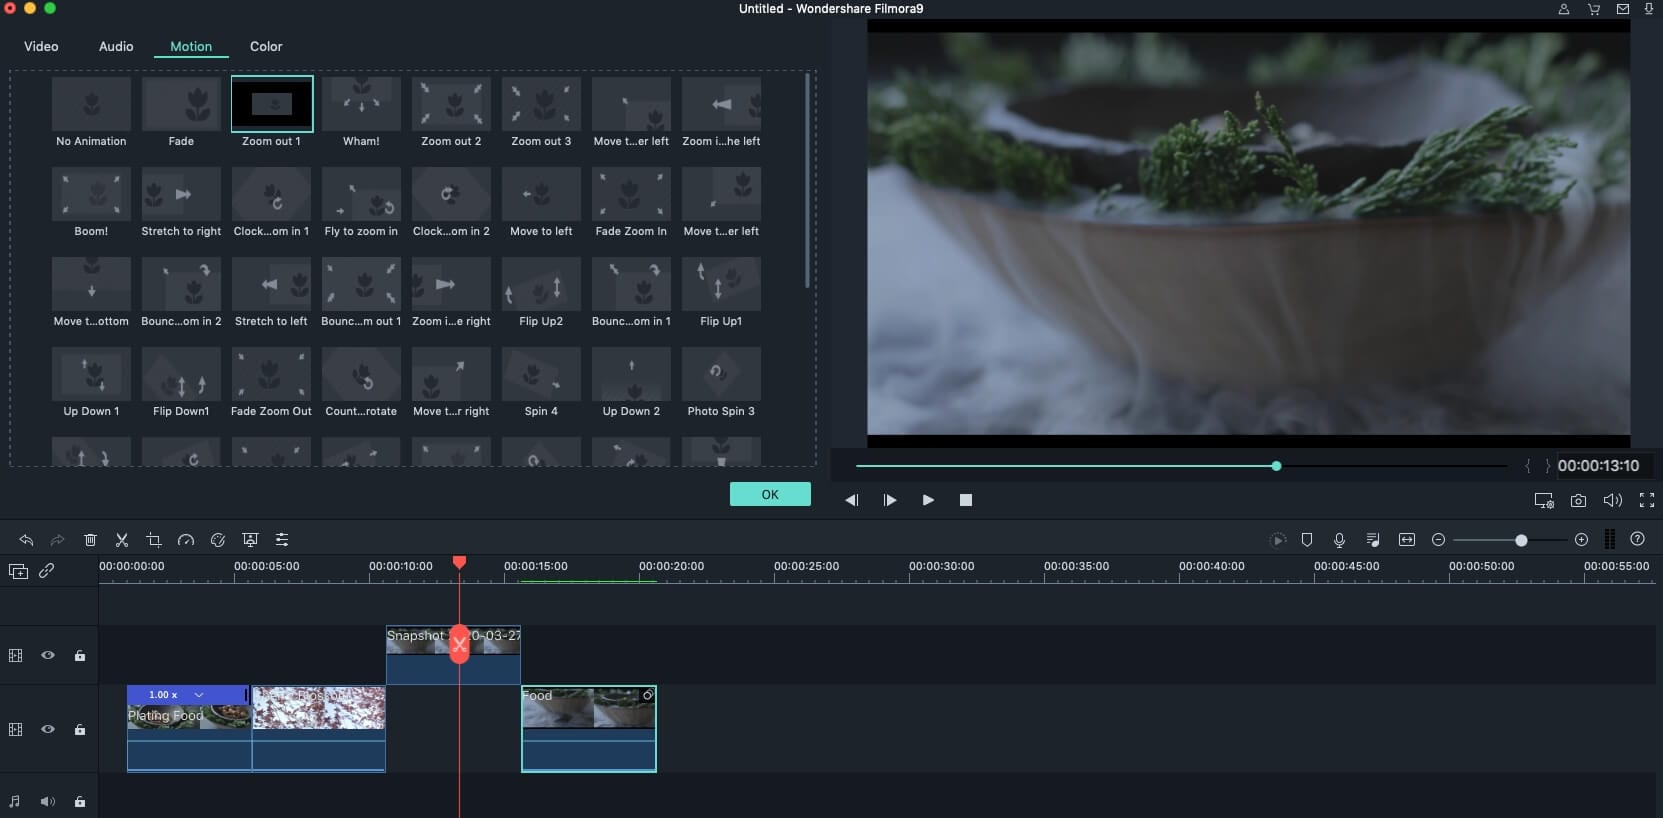 Wondershare Video Editor for Mac Screenshot